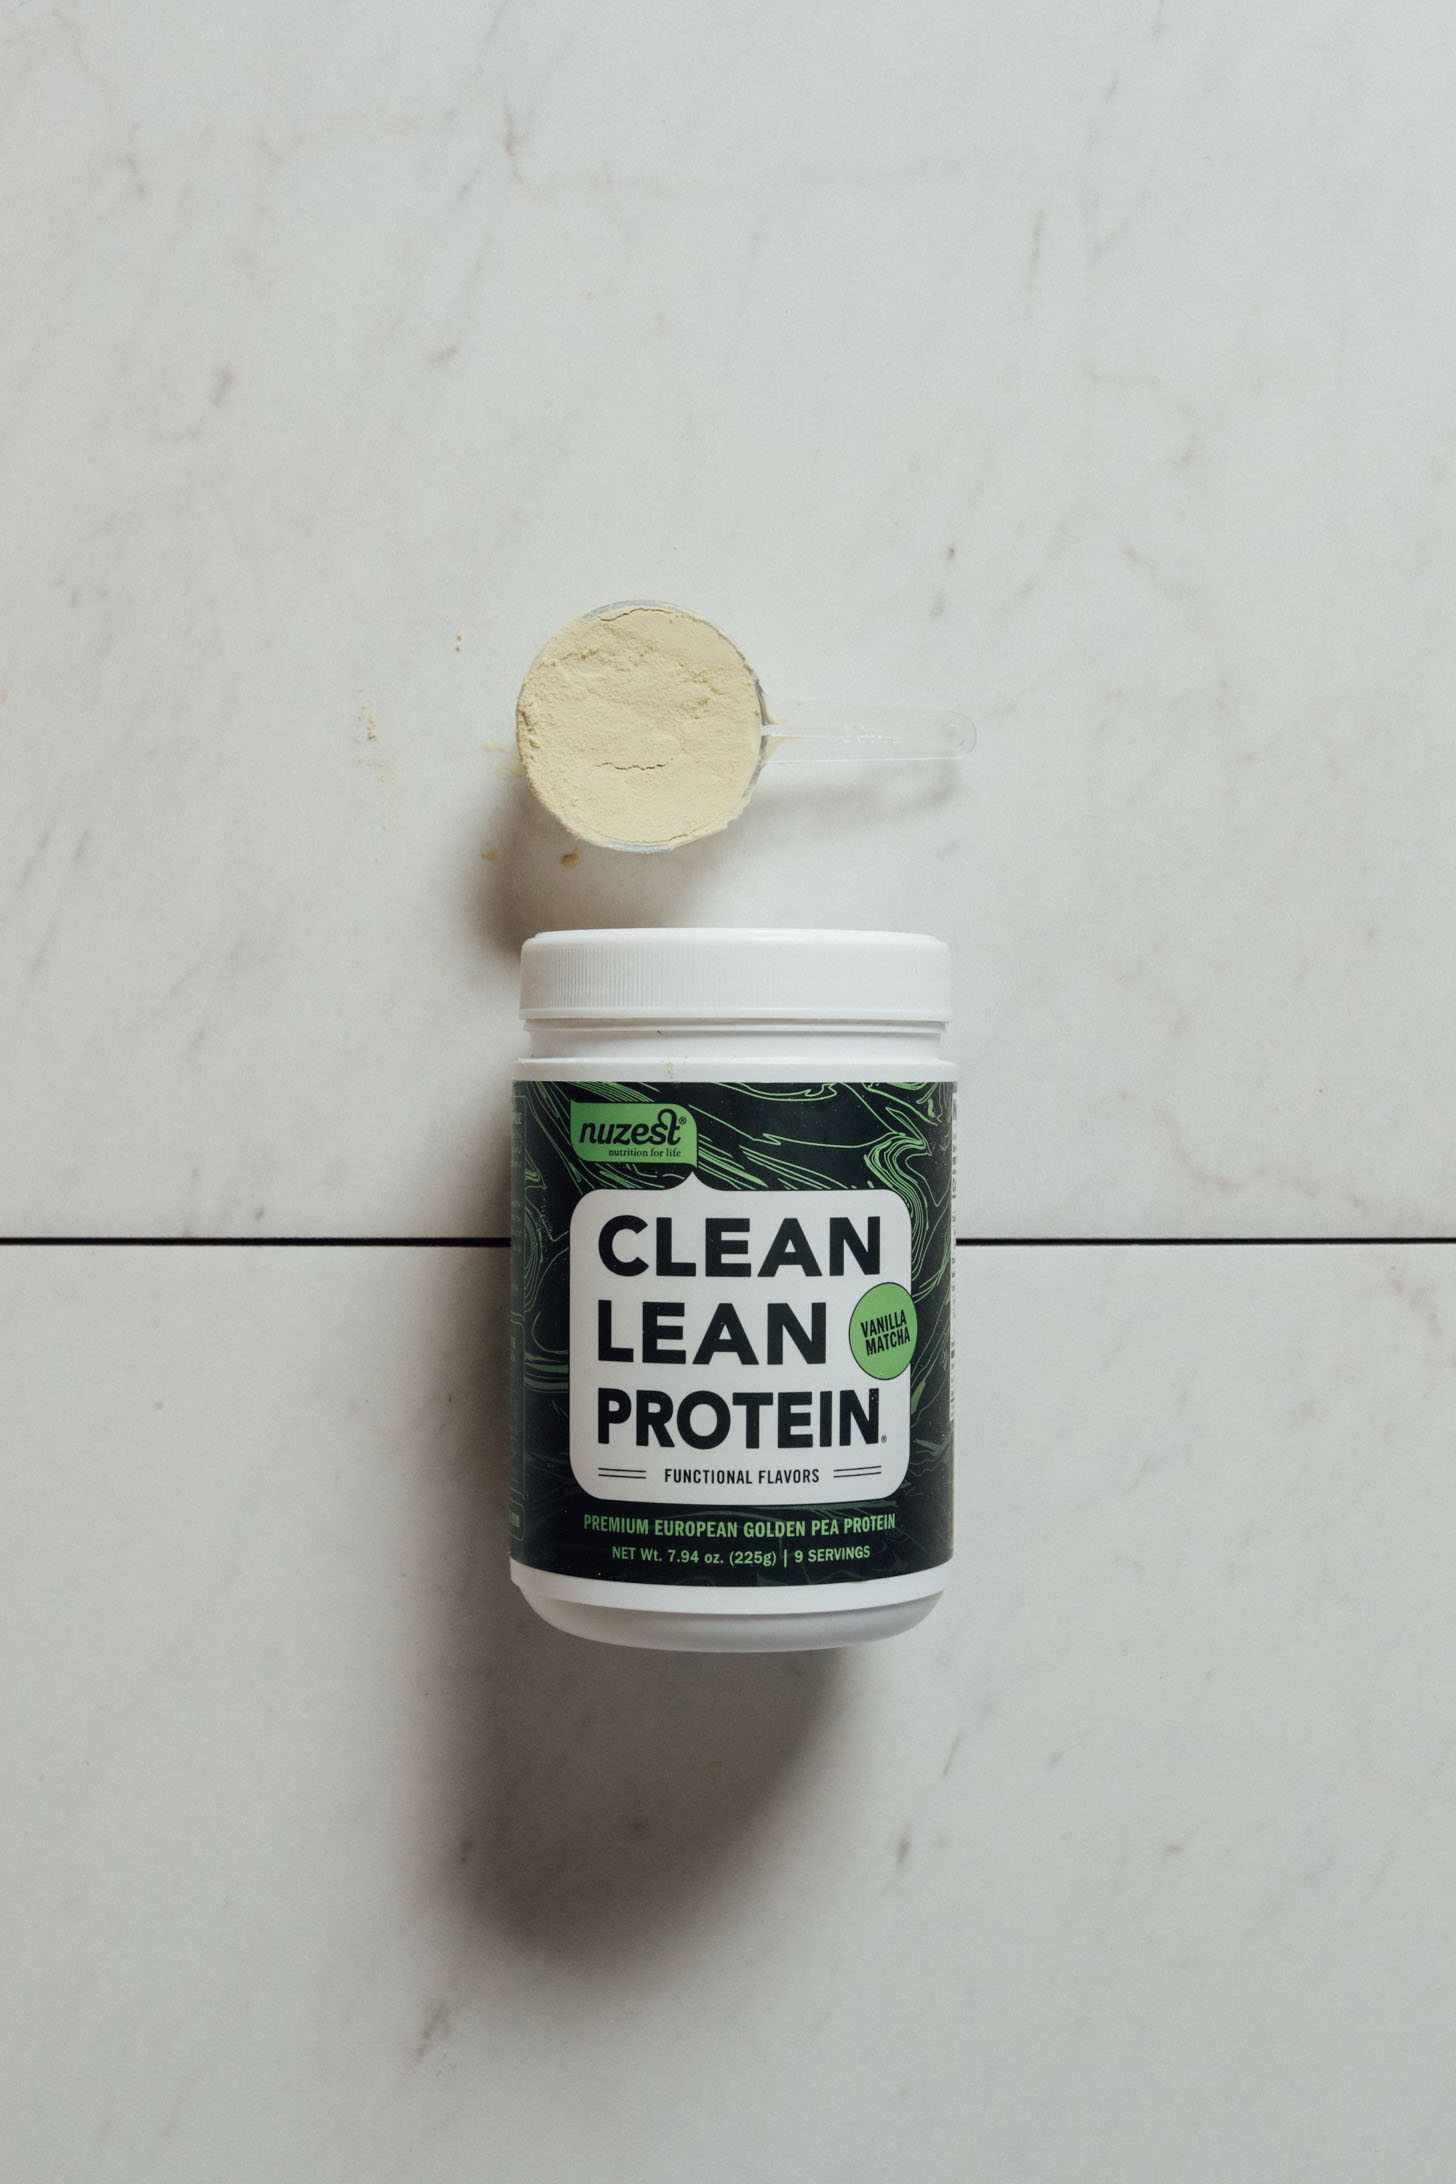 Tub and scoop of Nuzest Vanilla Matcha protein powder for our review